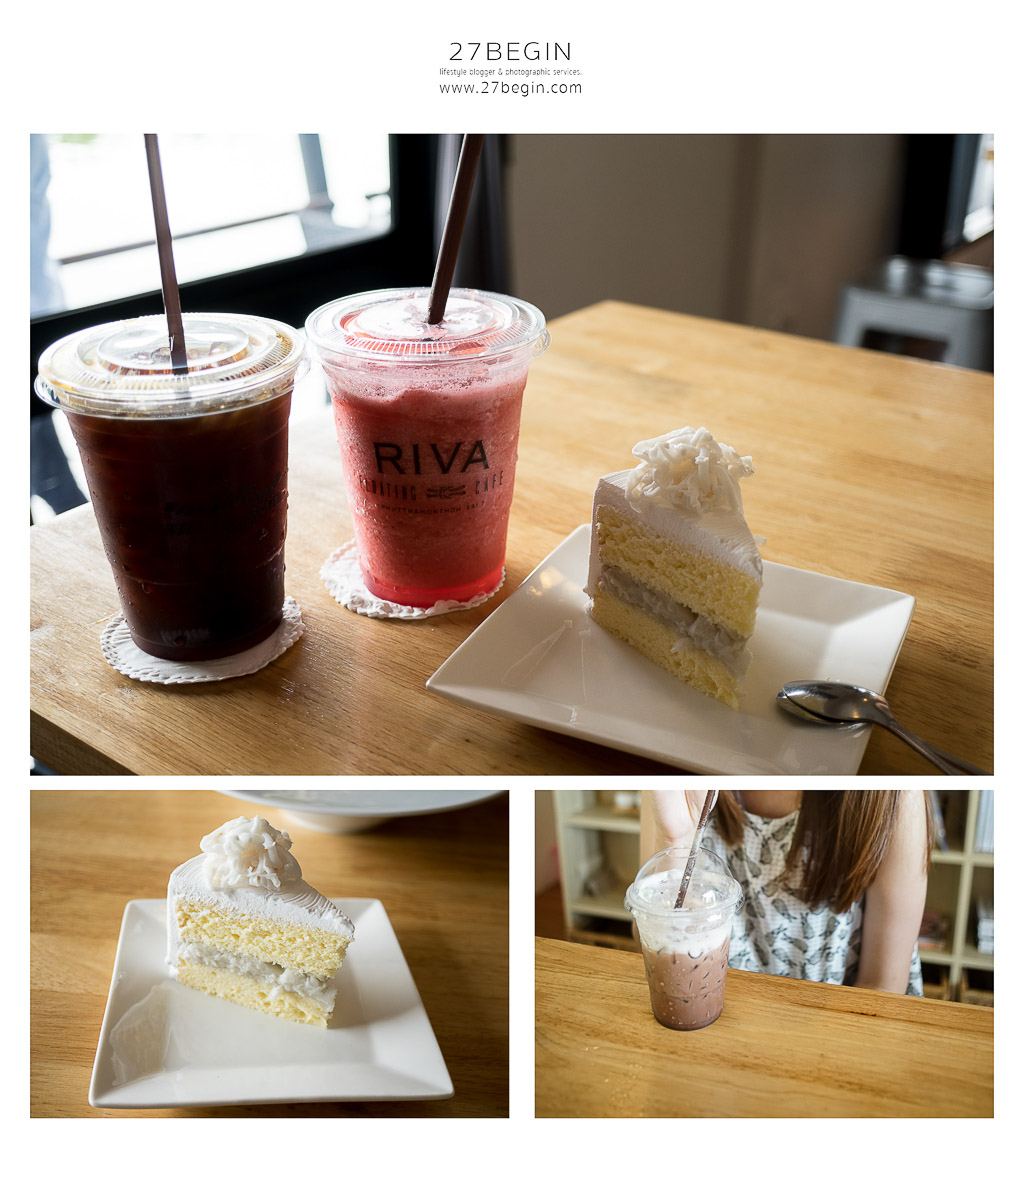 27begin_riverfloatingcafe14